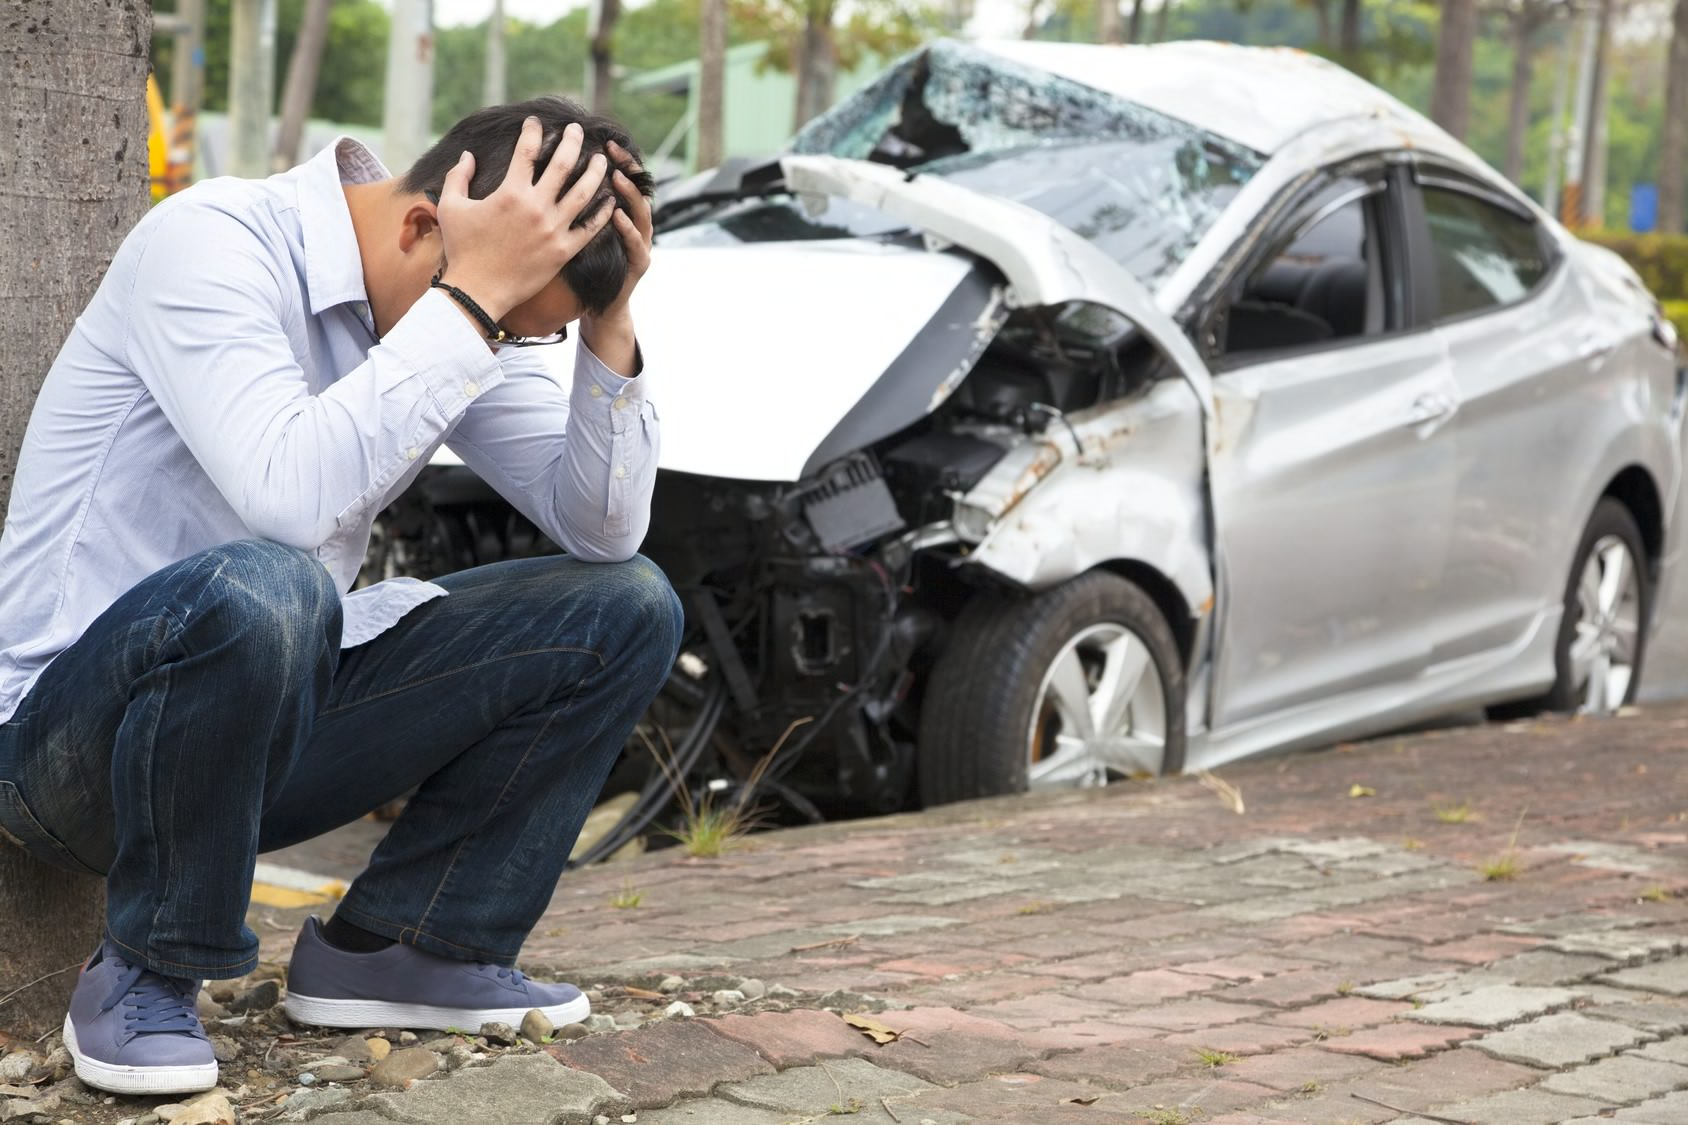 Get Help For Your Personal Injury